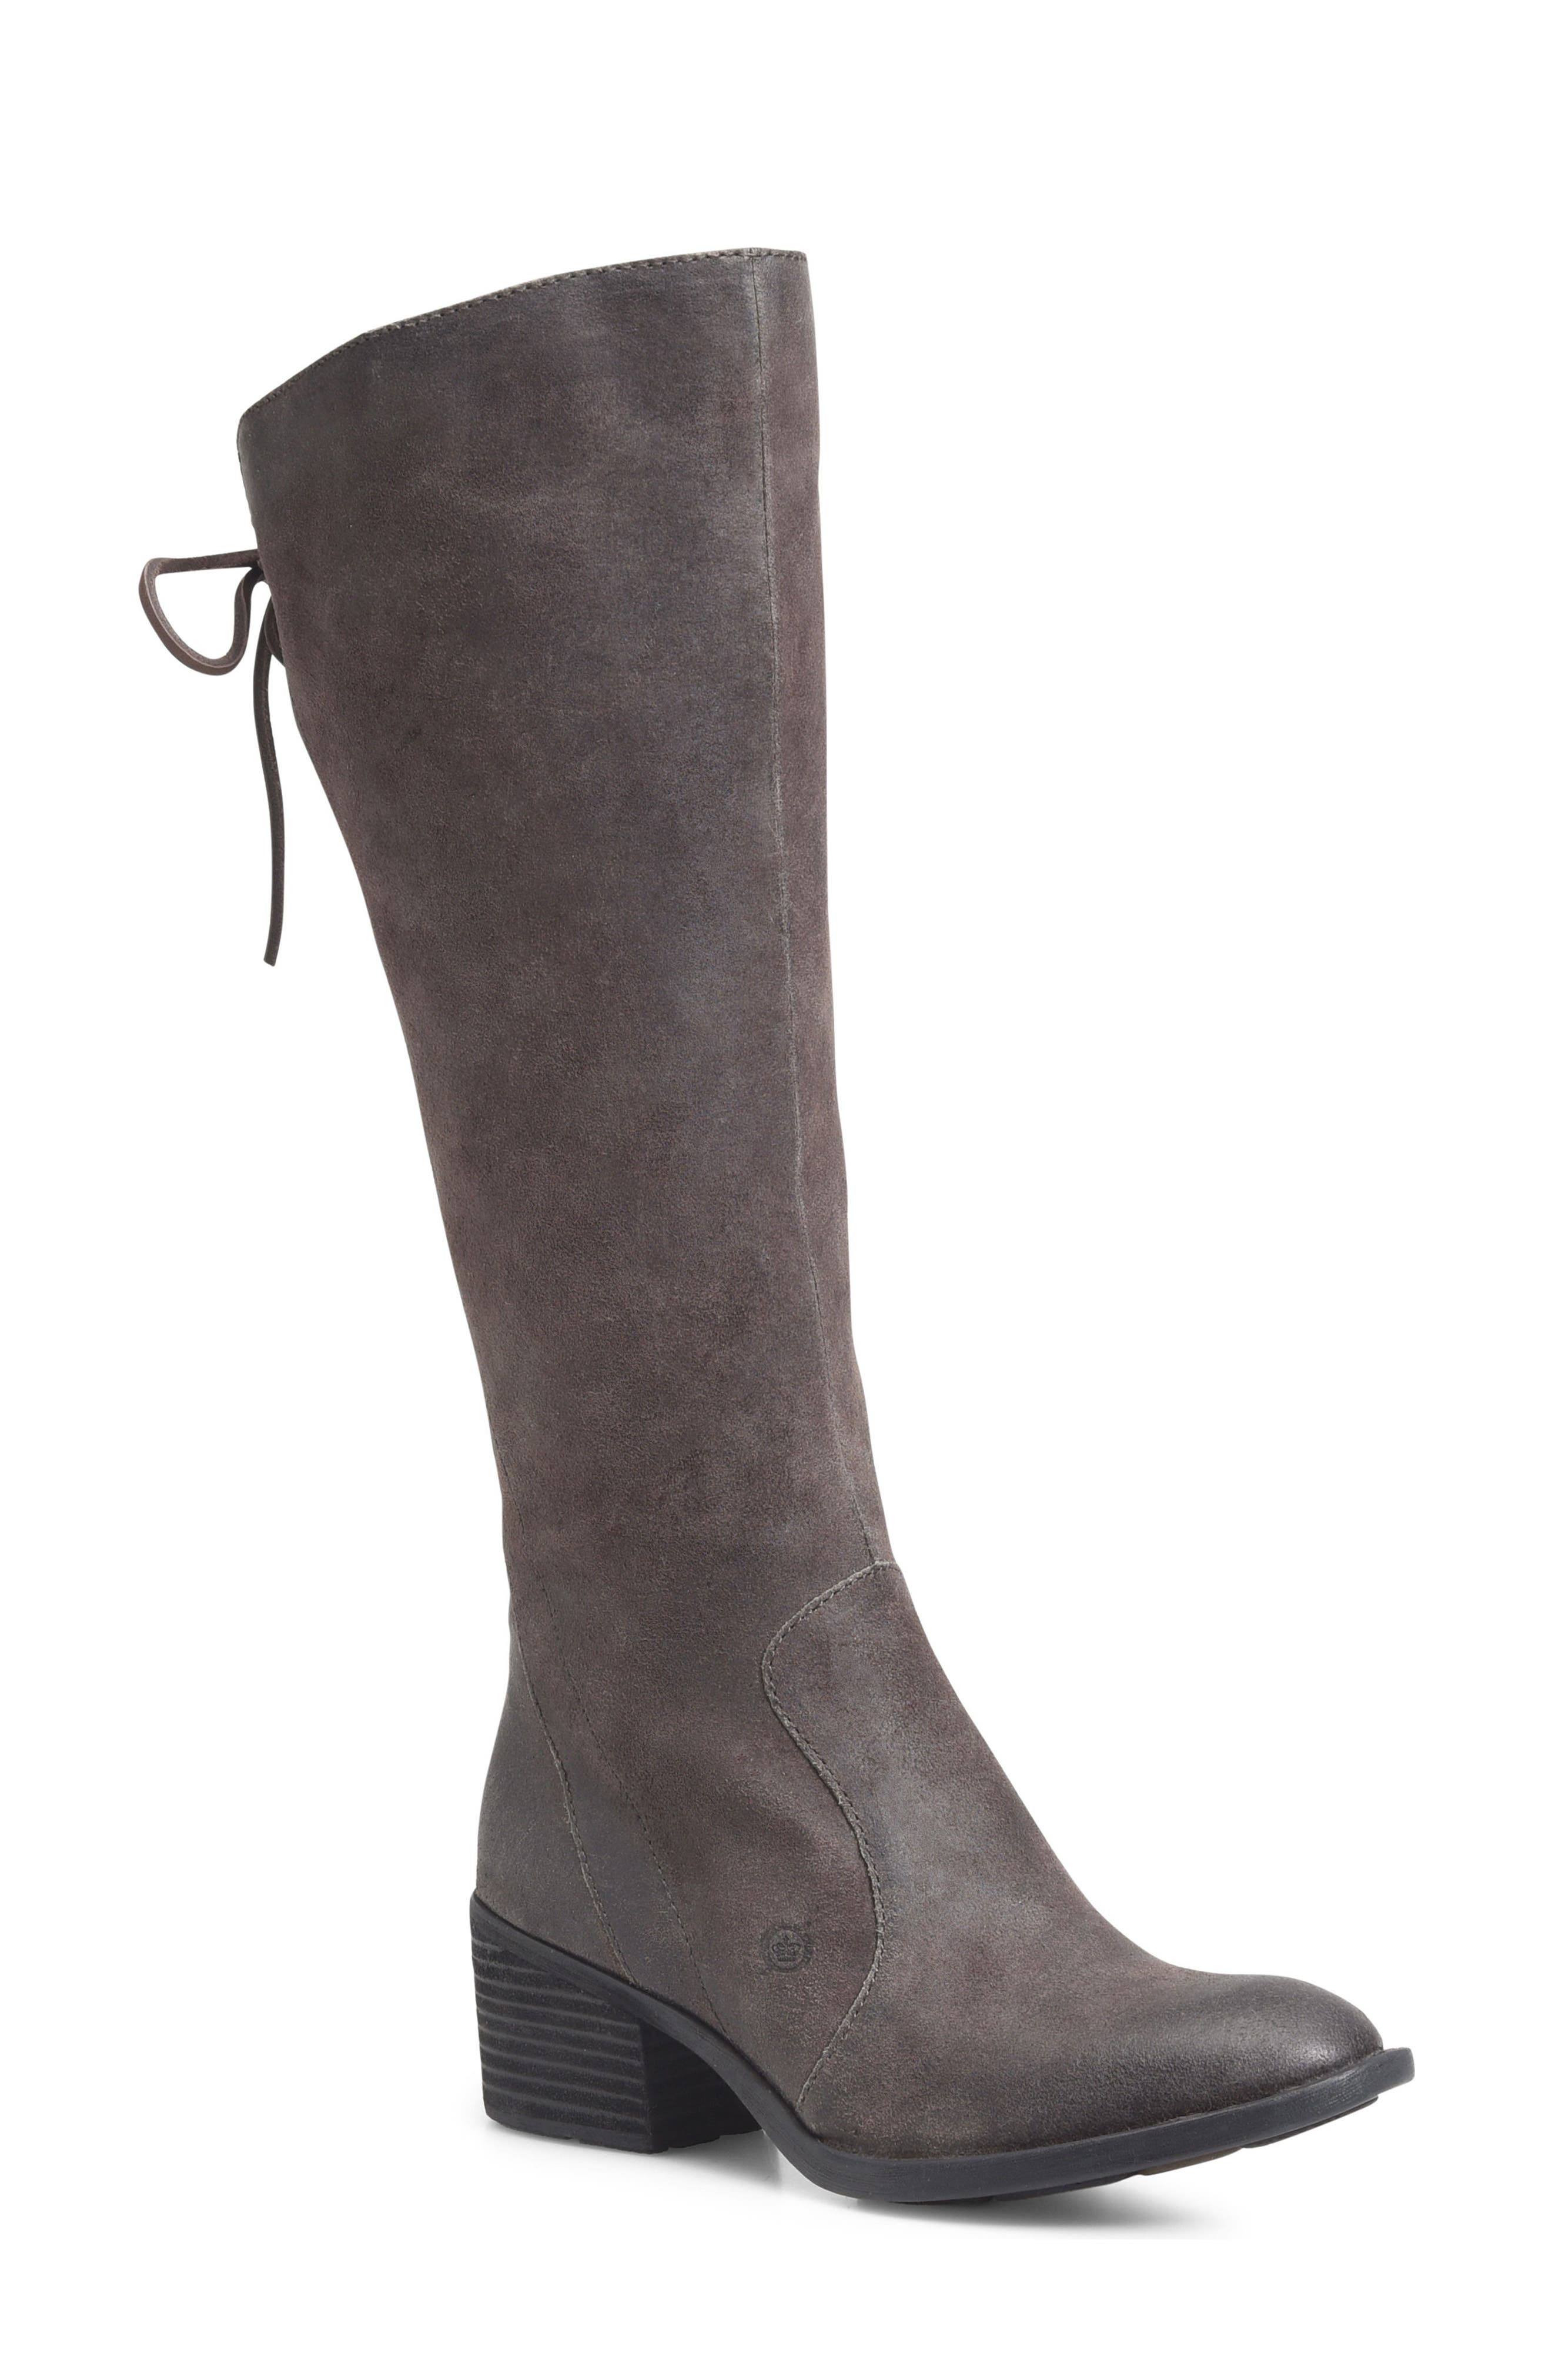 Felicia Knee High Boot,                         Main,                         color, Grey Distressed Leather